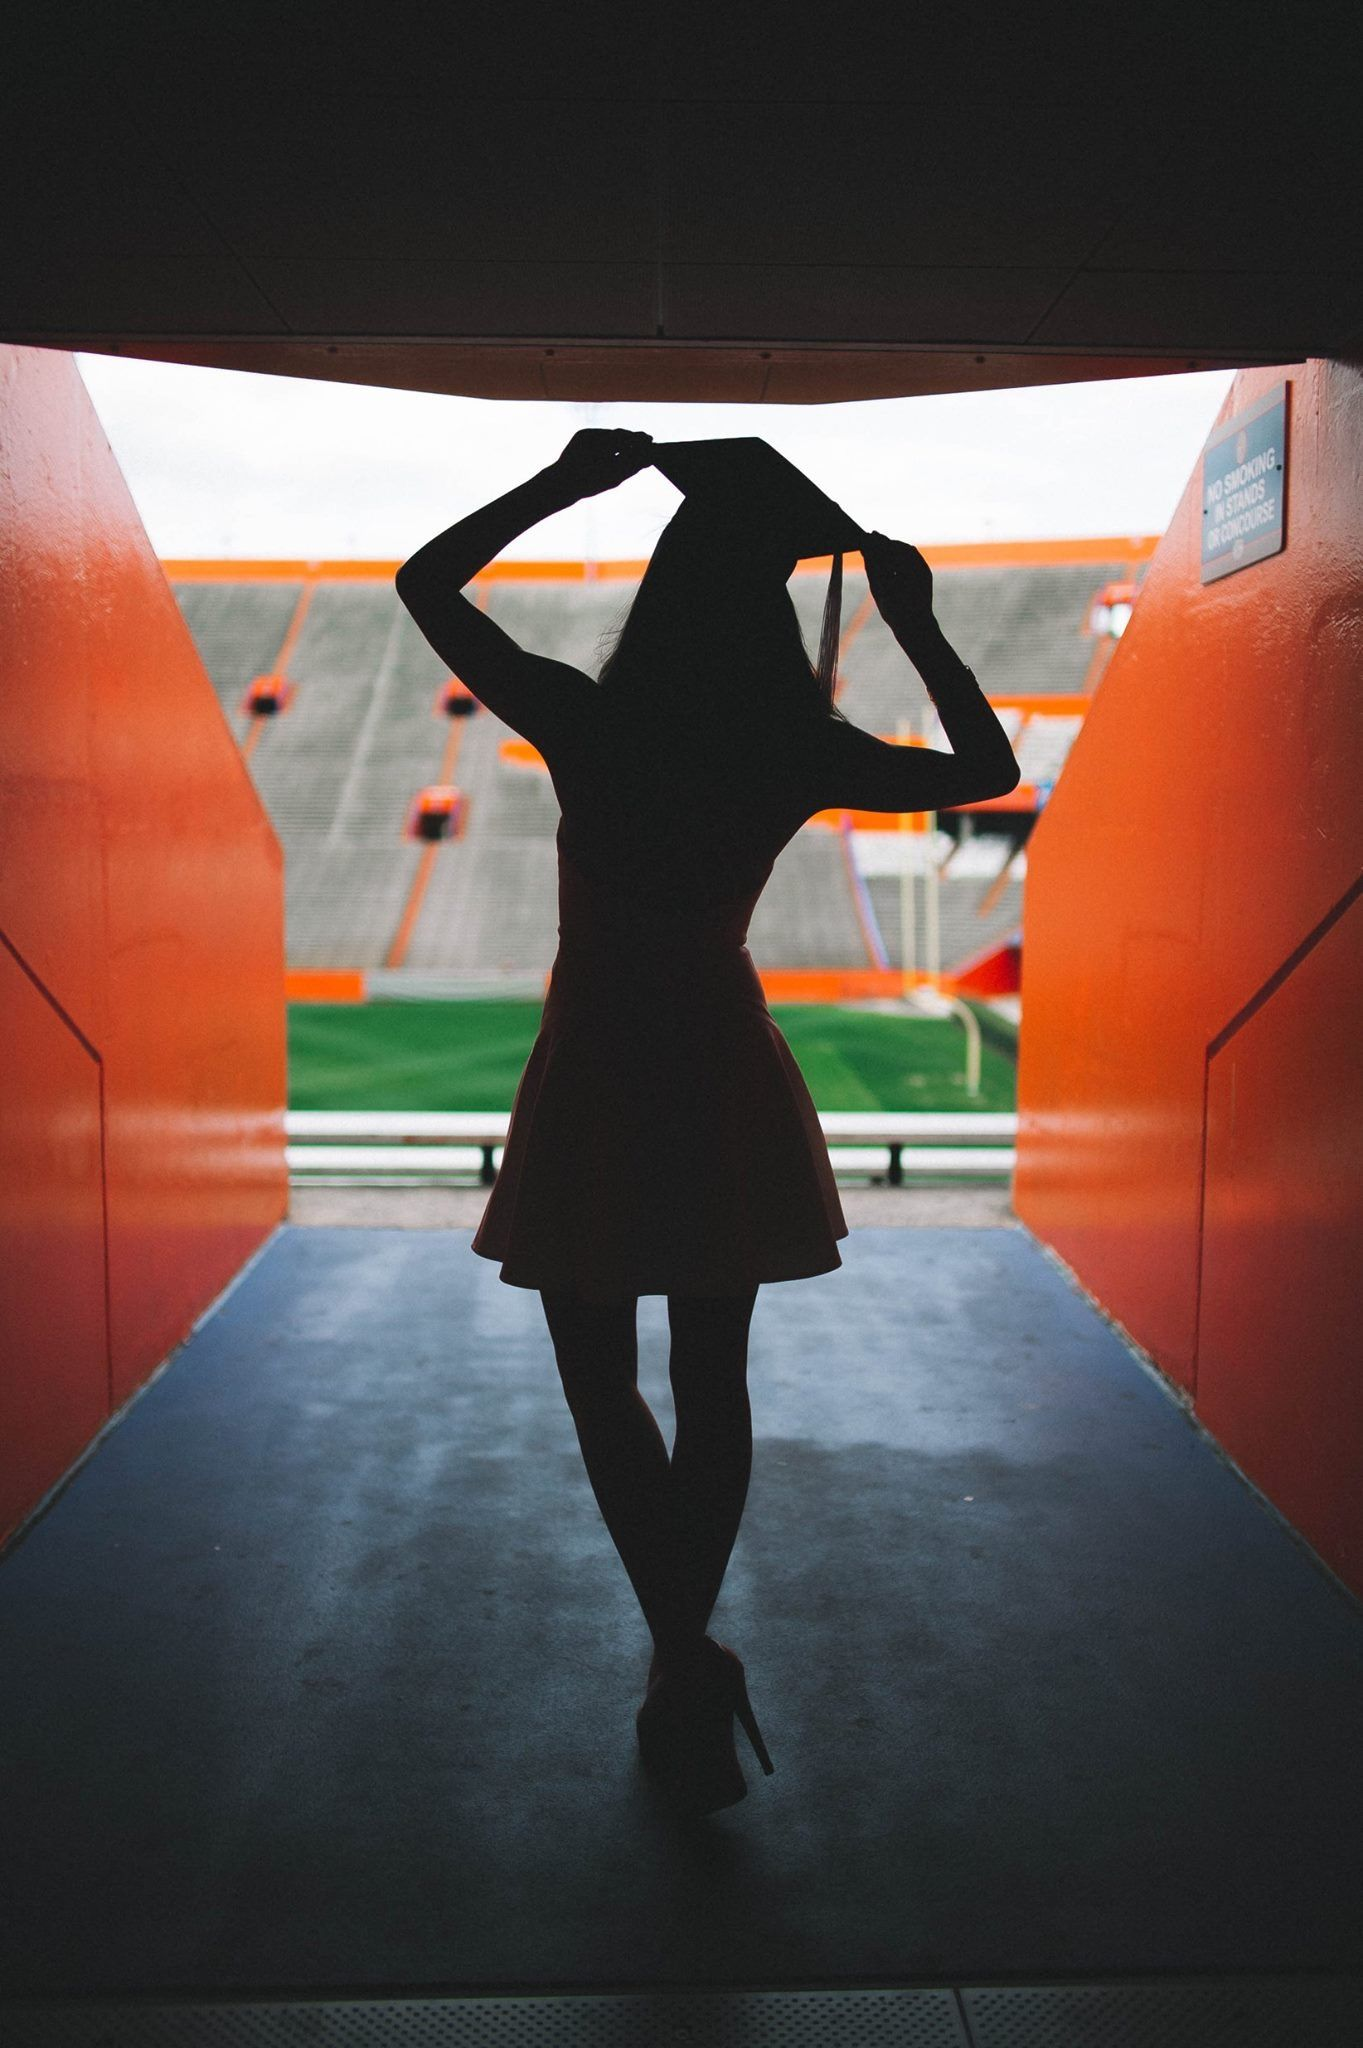 Pin by Trinity Bruener on uf grad pic ideas   Pinterest   Stage ...